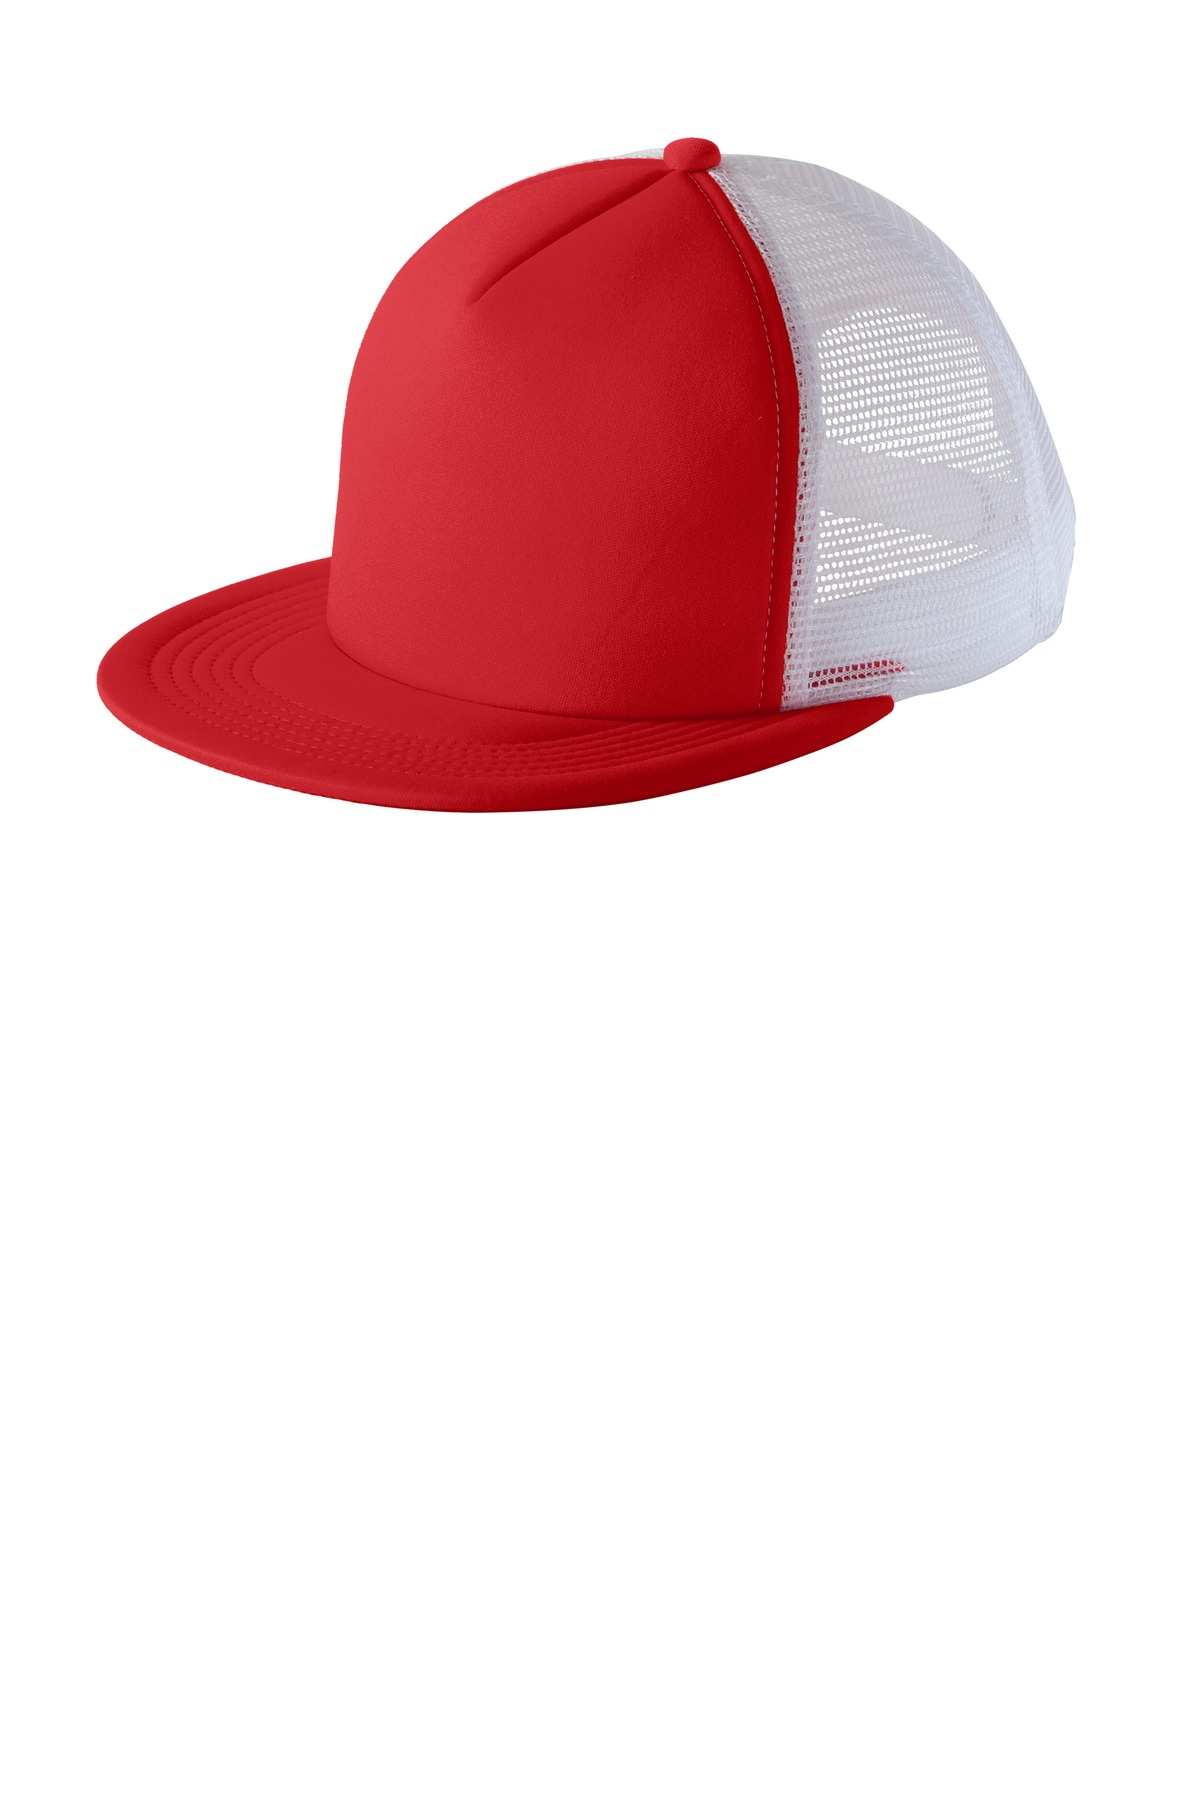 District ®  Flat Bill Snapback Trucker Cap. DT624 - New Red